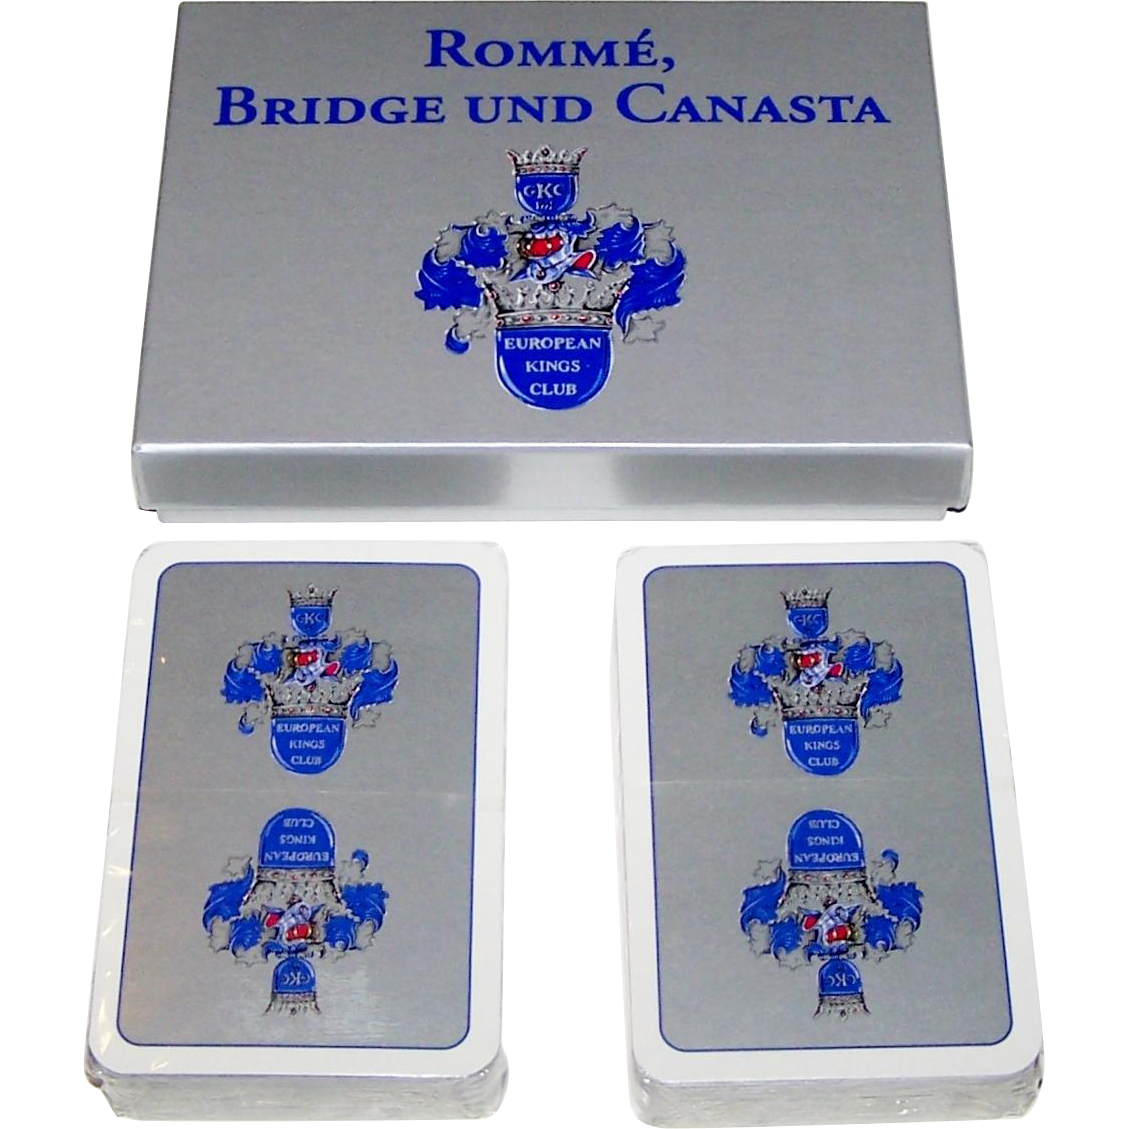 "Double Deck ASS ""European Kings Club"" Playing Cards, Standard Berlin Pattern, c.1992"